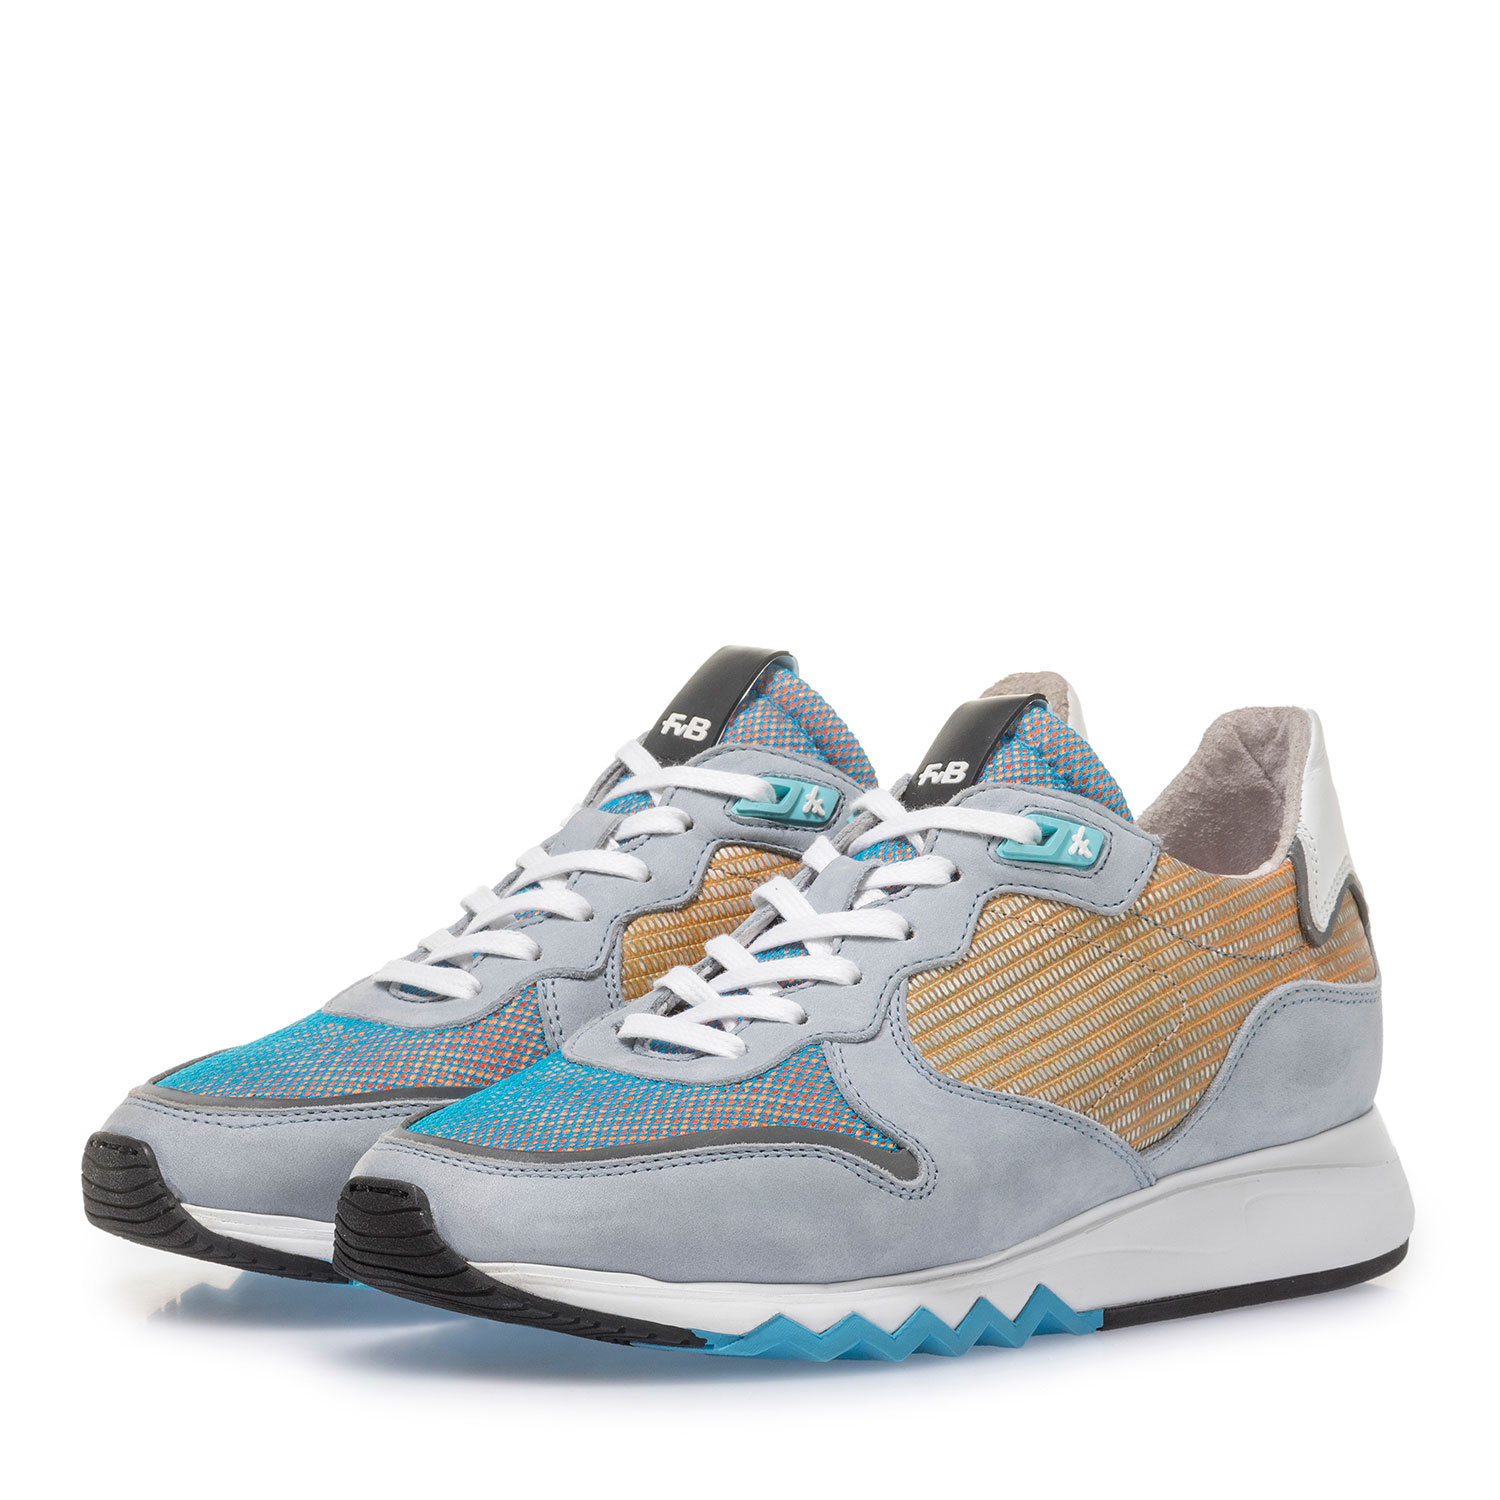 85302/06 - Light blue nubuck leather sneaker